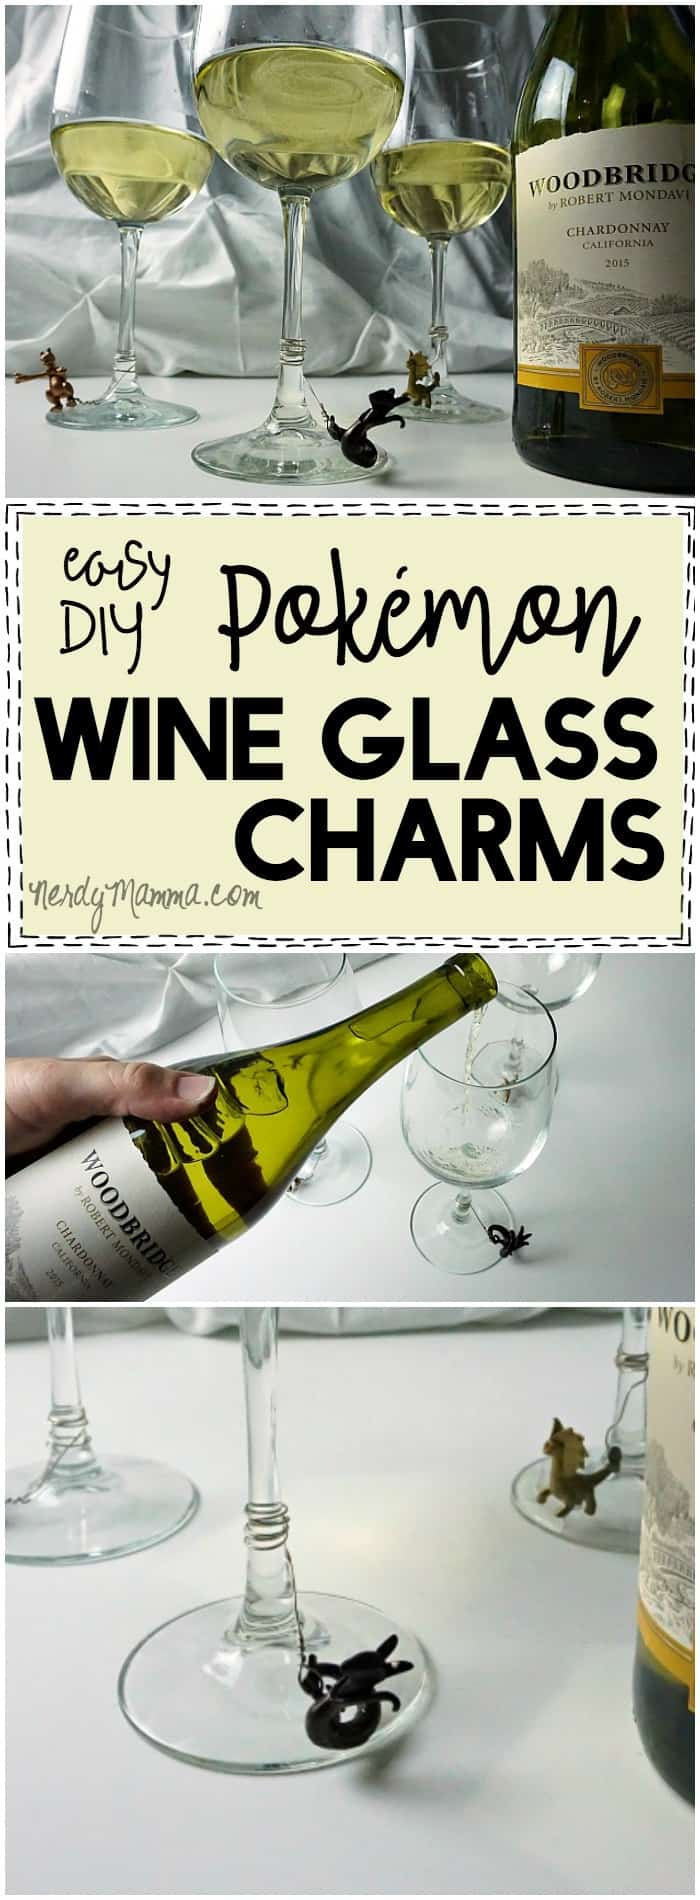 This cute tutorial for these adorable Pokemon wine charms! So AWESOME. I have to make them now. LOL!